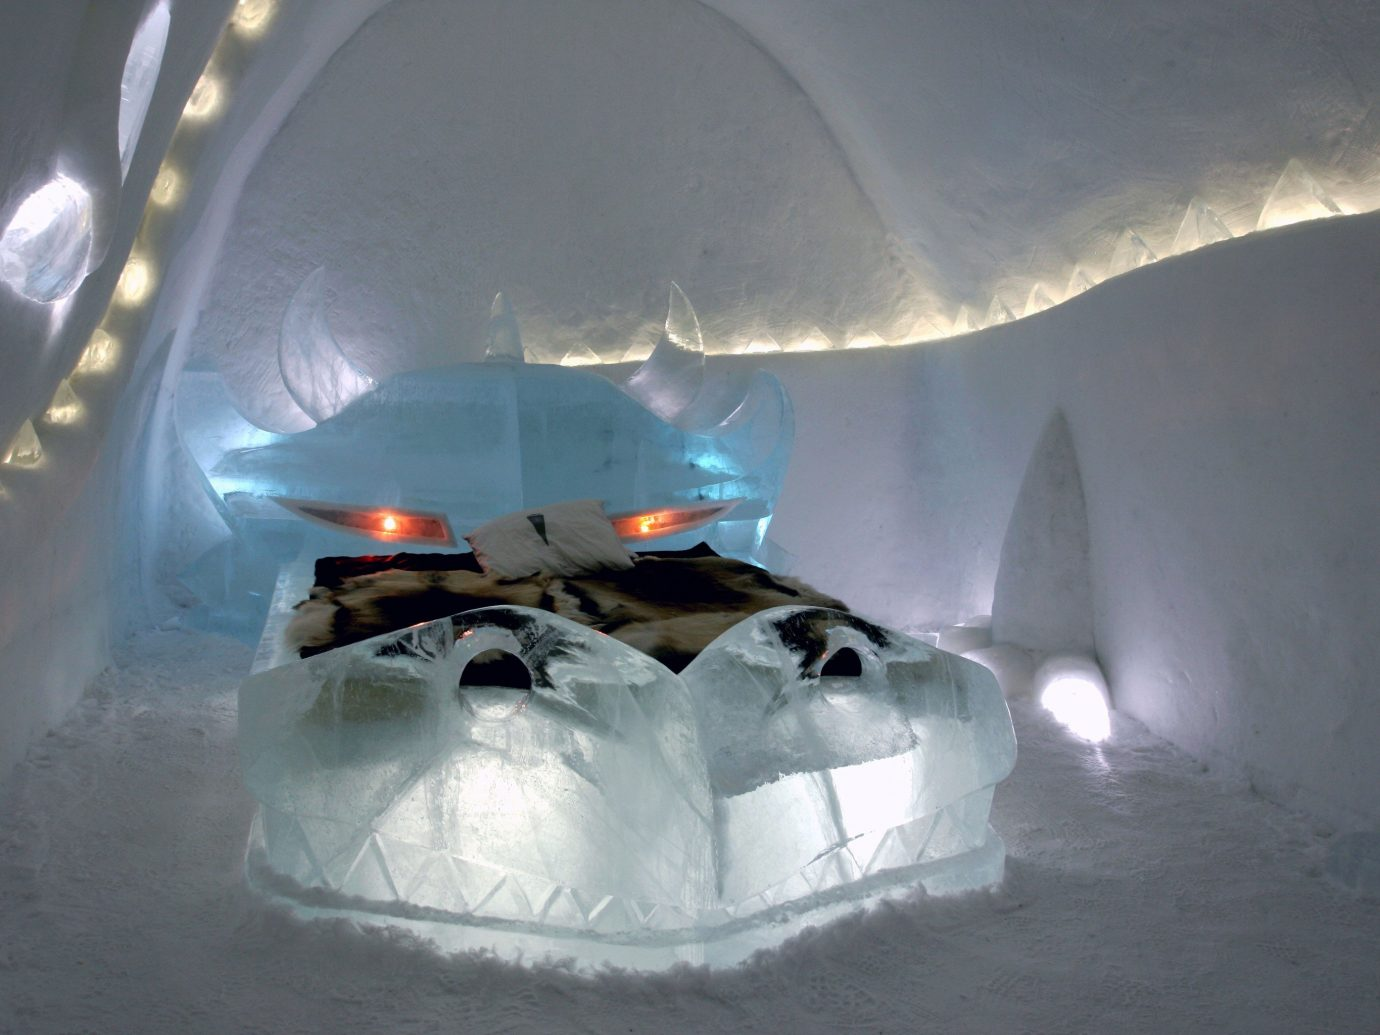 Trip Ideas snow weather light ice freezing igloo ice hotel screenshot blizzard melting